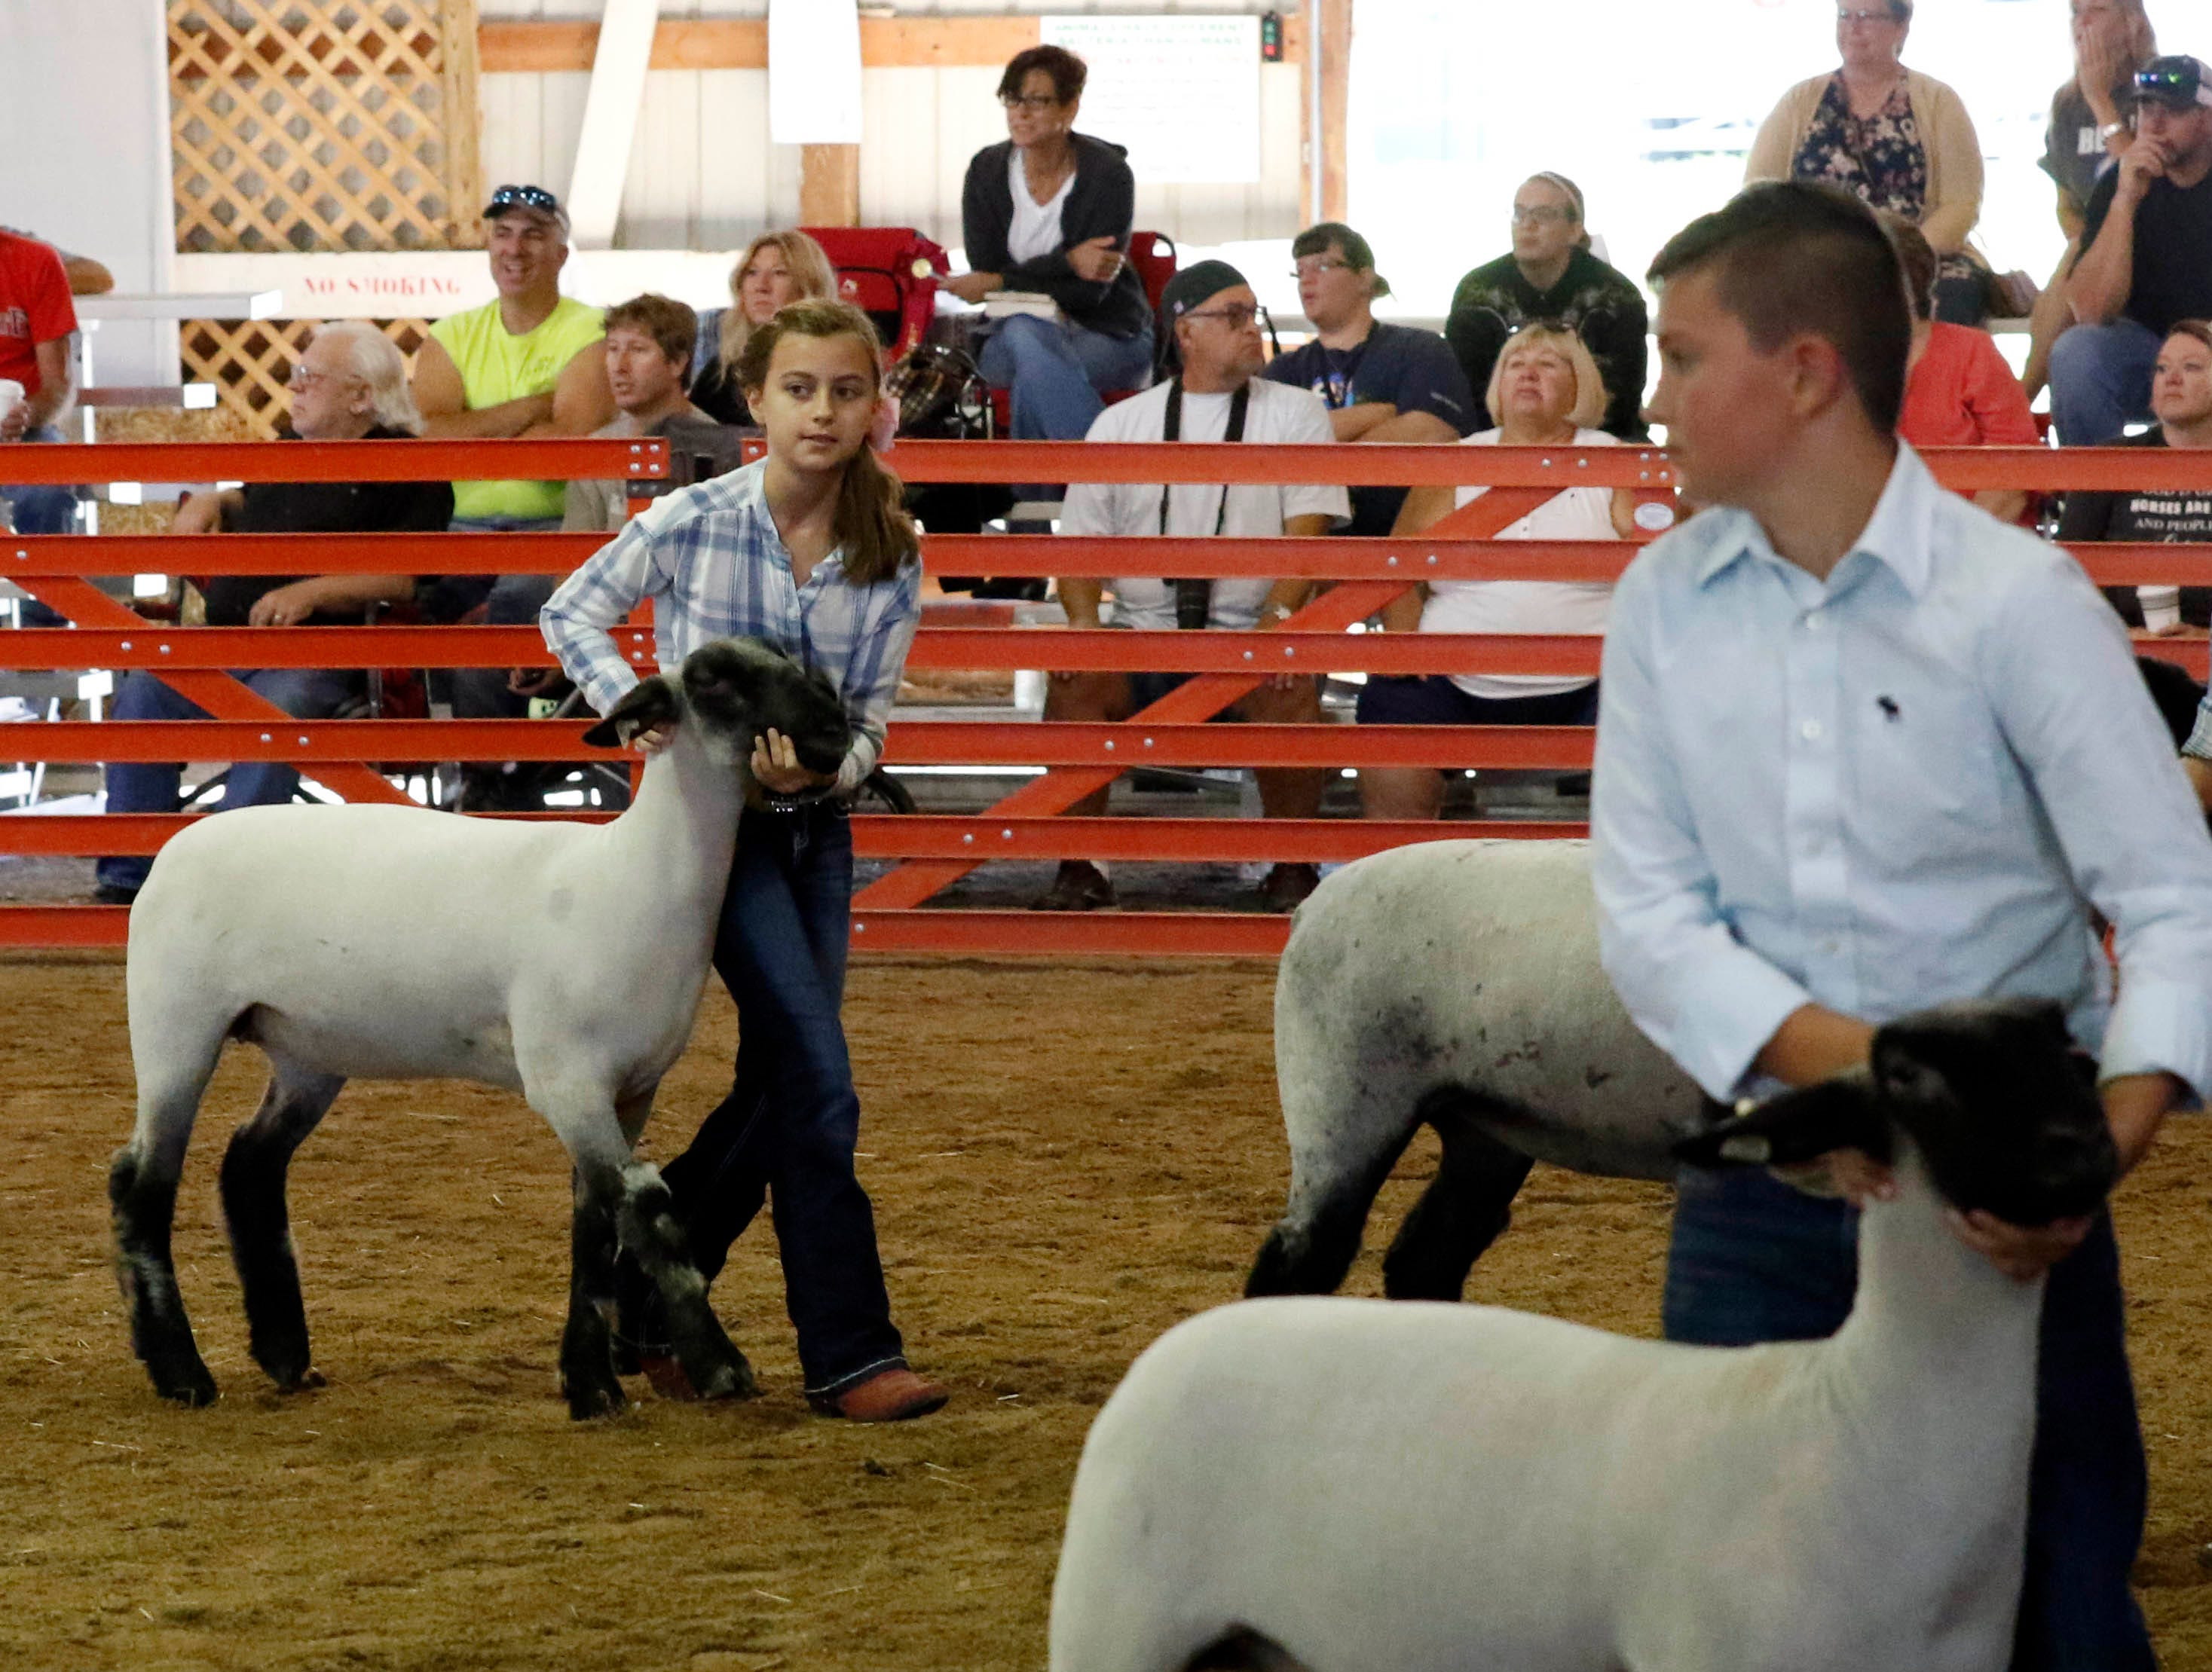 The junior fair sheep show was held Wednesday, Oct. 11, 2018, at the Fairfield County Fair in Lancaster.